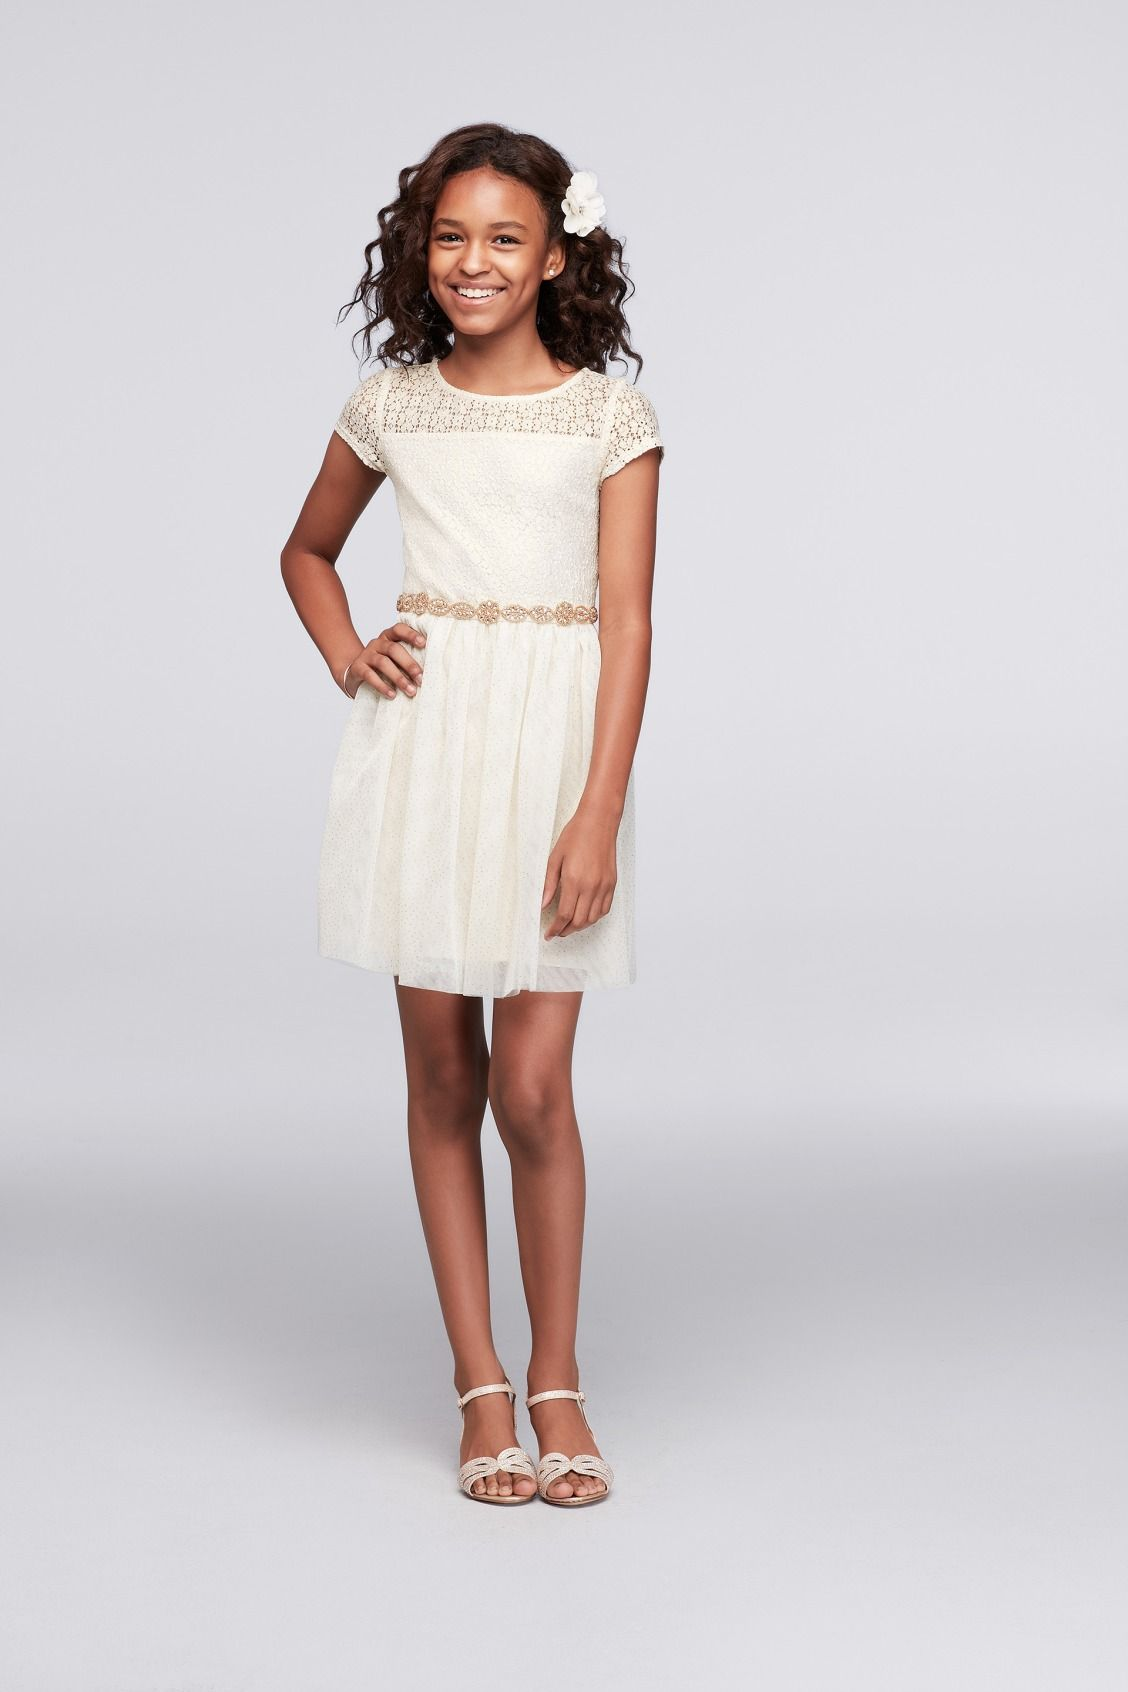 80b8411405da Lace and Tulle Short Dress with Beaded Waist Little Girl Holiday ...